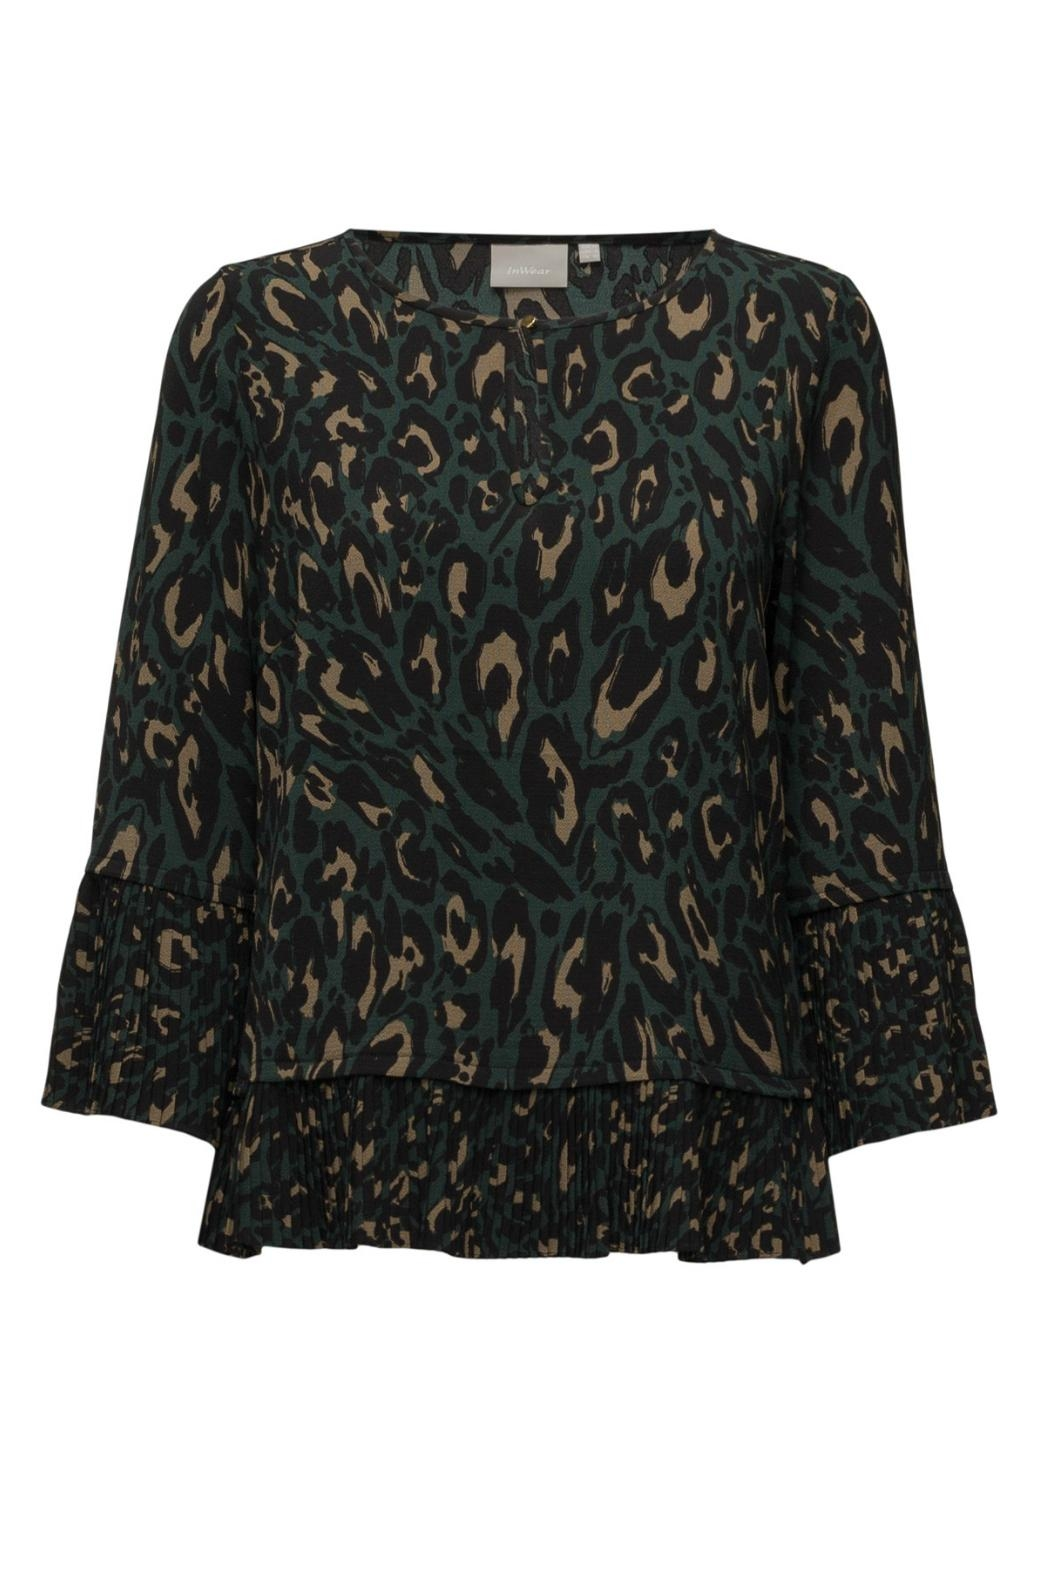 Inwear Mariann Blouse - Front Cropped Image